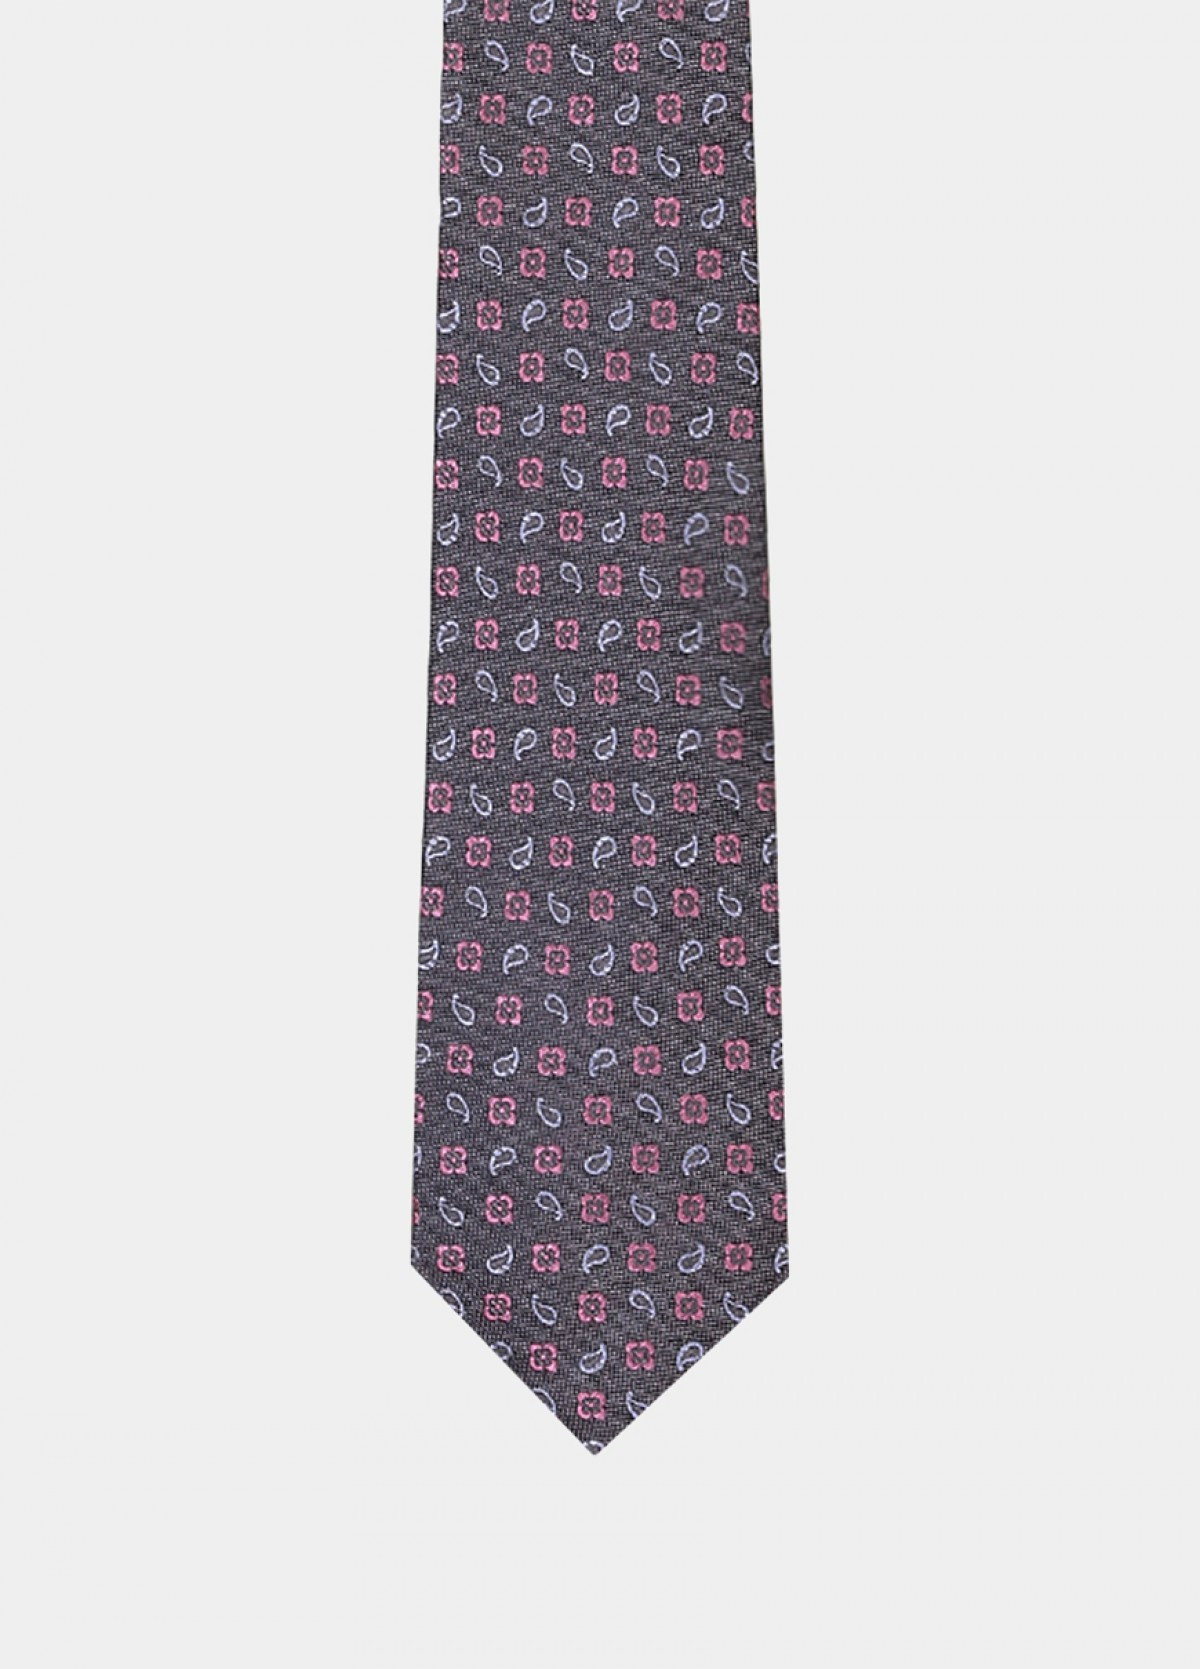 The Grey Stain Resistant Tie